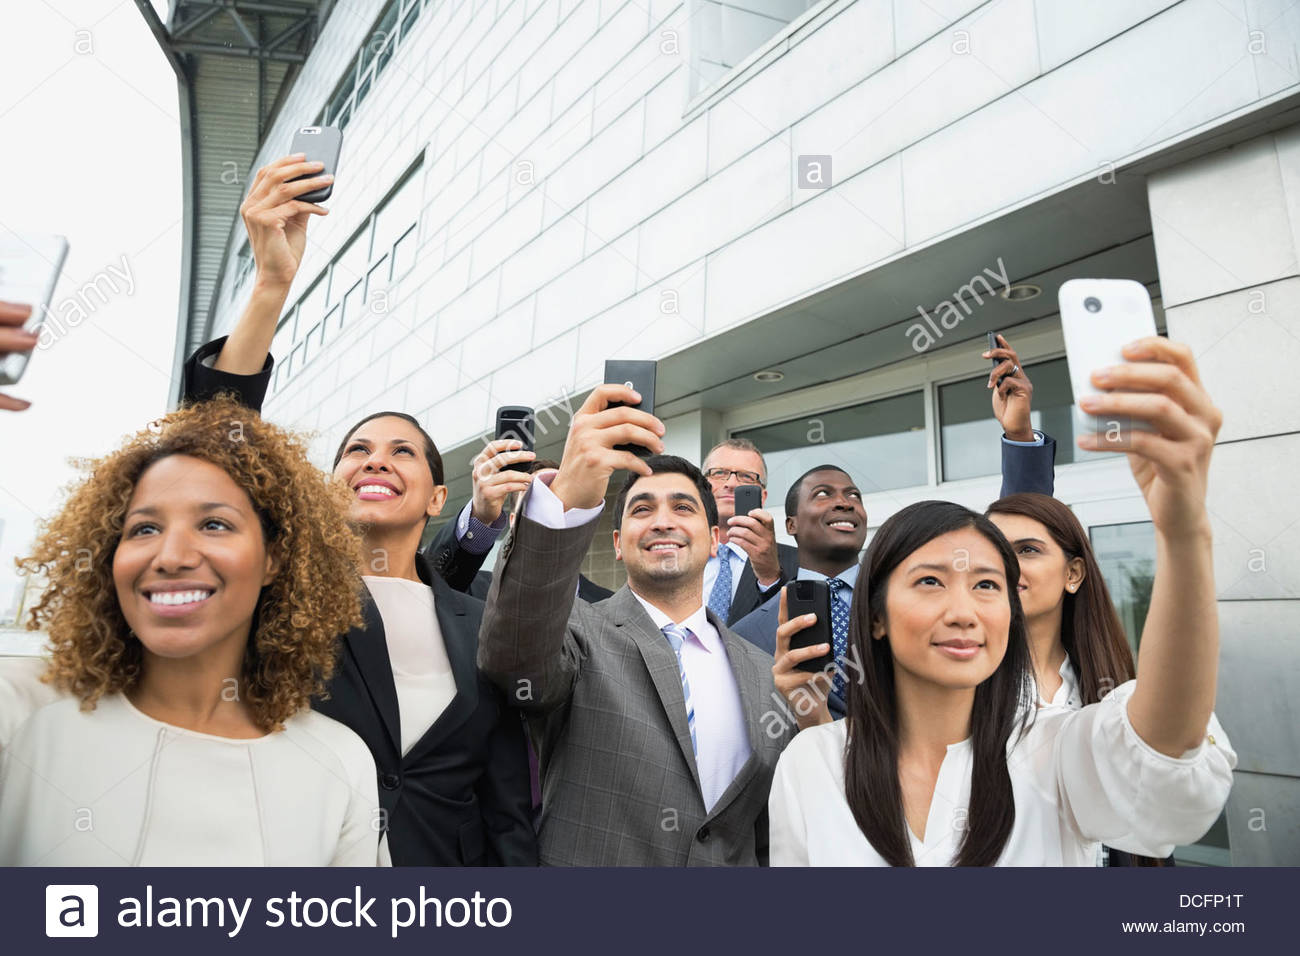 Group of business people taking photos with smart phones - Stock Image